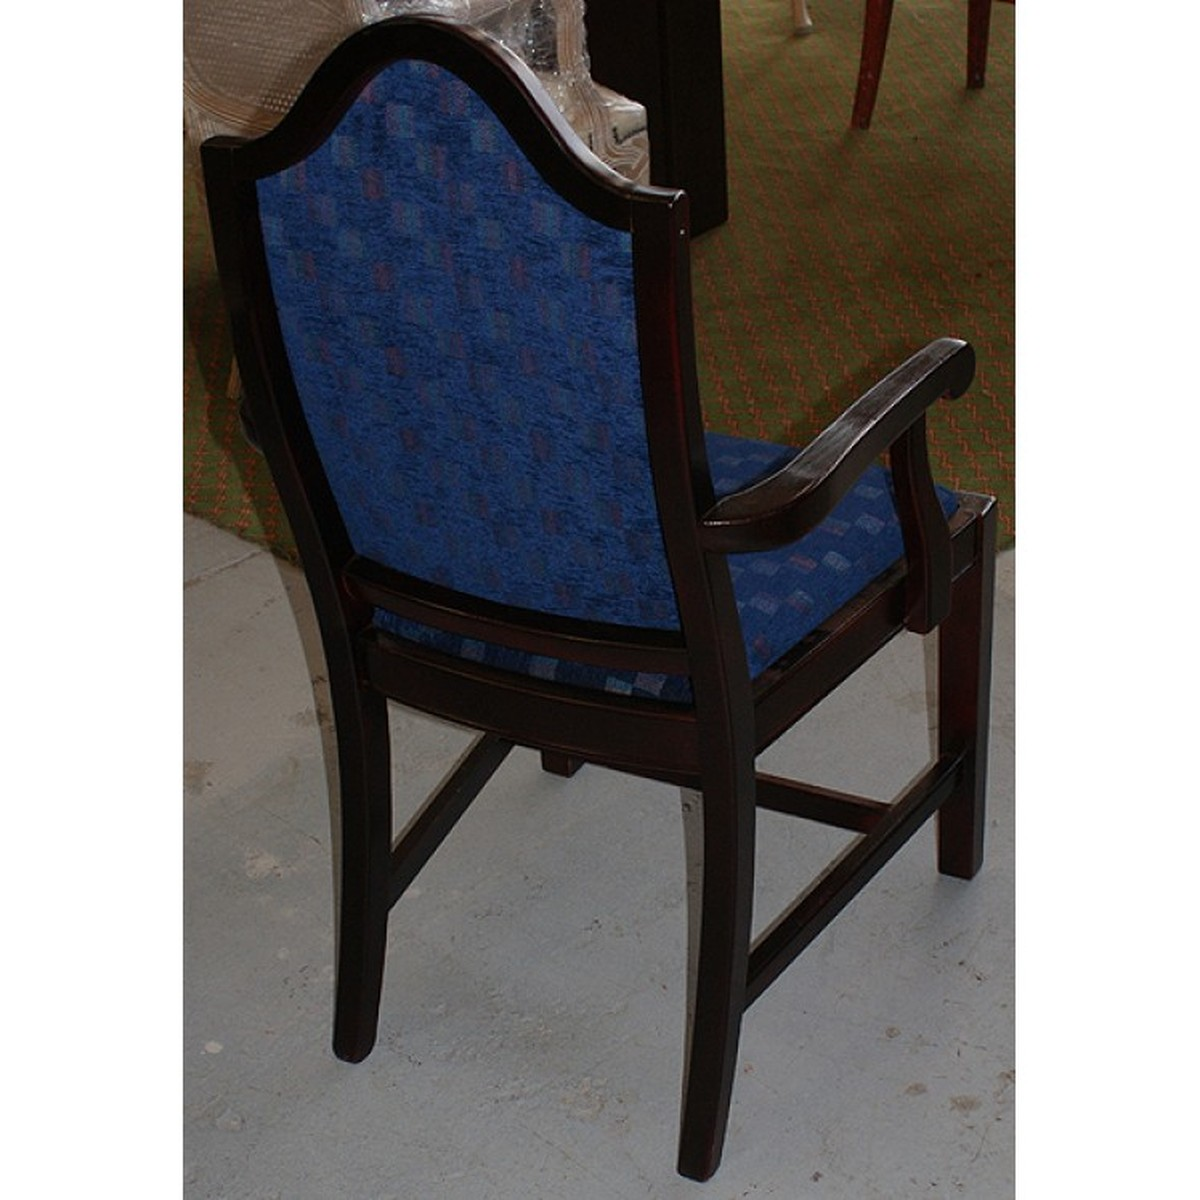 Refurbished Chairs Secondhand Chairs And Tables Lounge Furniture 12x